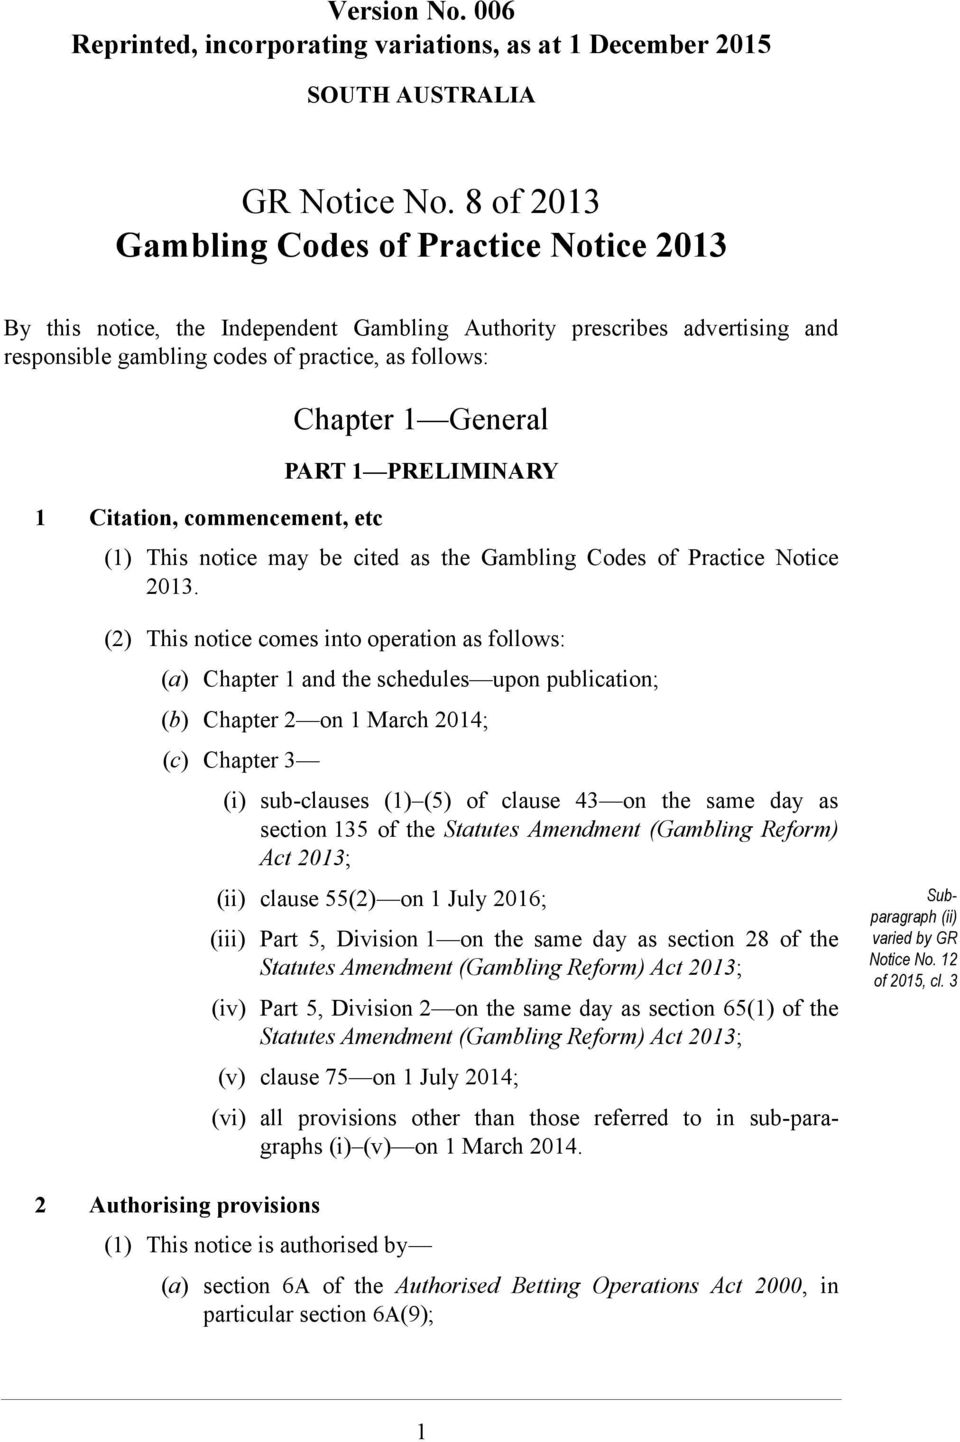 PRELIMINARY (1) This notice may be cited as the Gambling Codes of Practice Notice 2013.